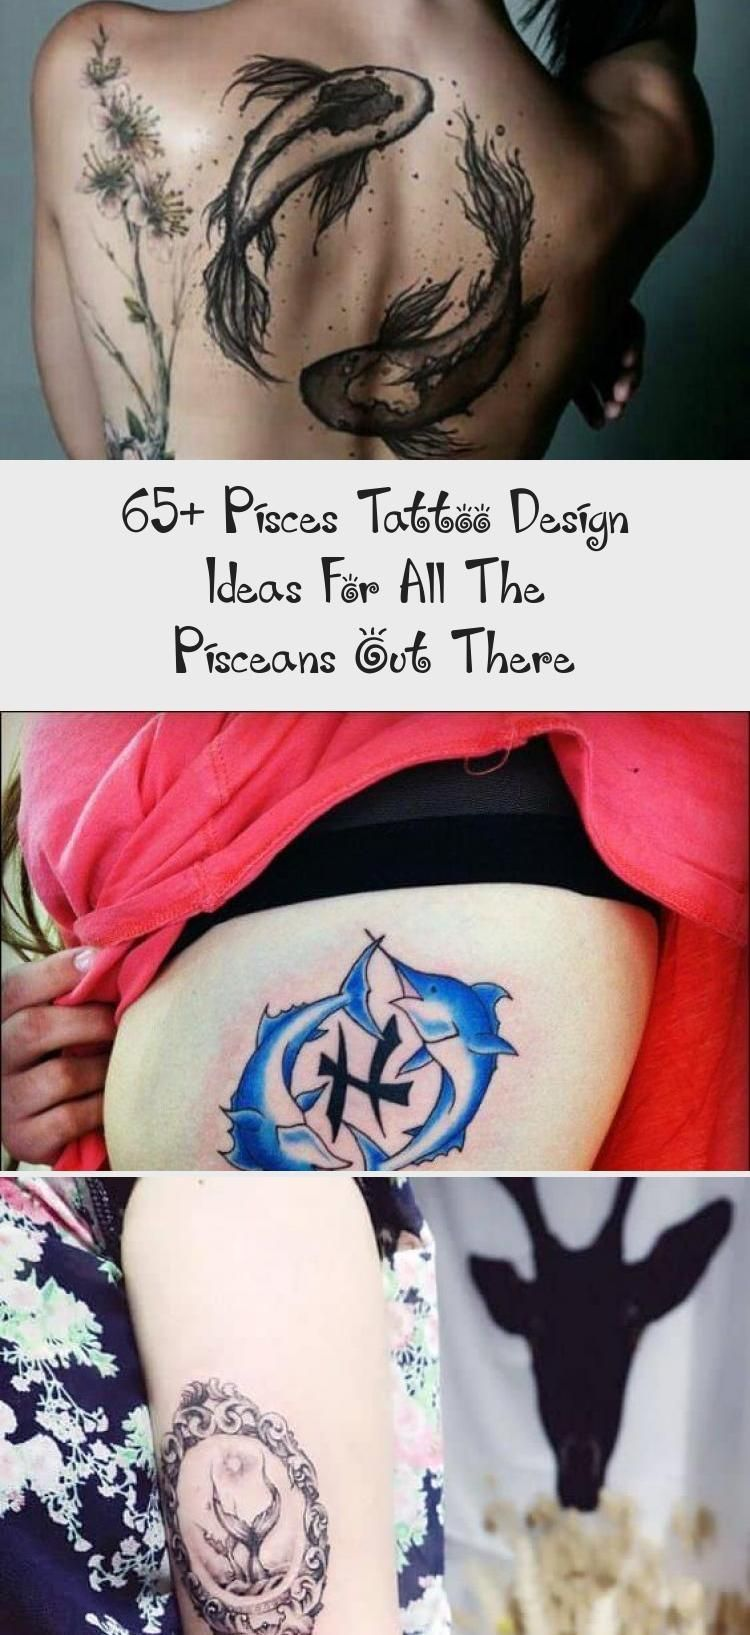 65+ Pisces Tattoo Design Ideas For All Fish Out There »EcstasyCoffee # ..... -  65+ Pisces Tattoo Design Ideas for All Fish Out There »EcstasyCoffee # … – 65+ Pisces Tattoo D - #design #dragontattoo #ecstasycoffee #Fish #ideas #pisces #piscestattoo #tattoo #there